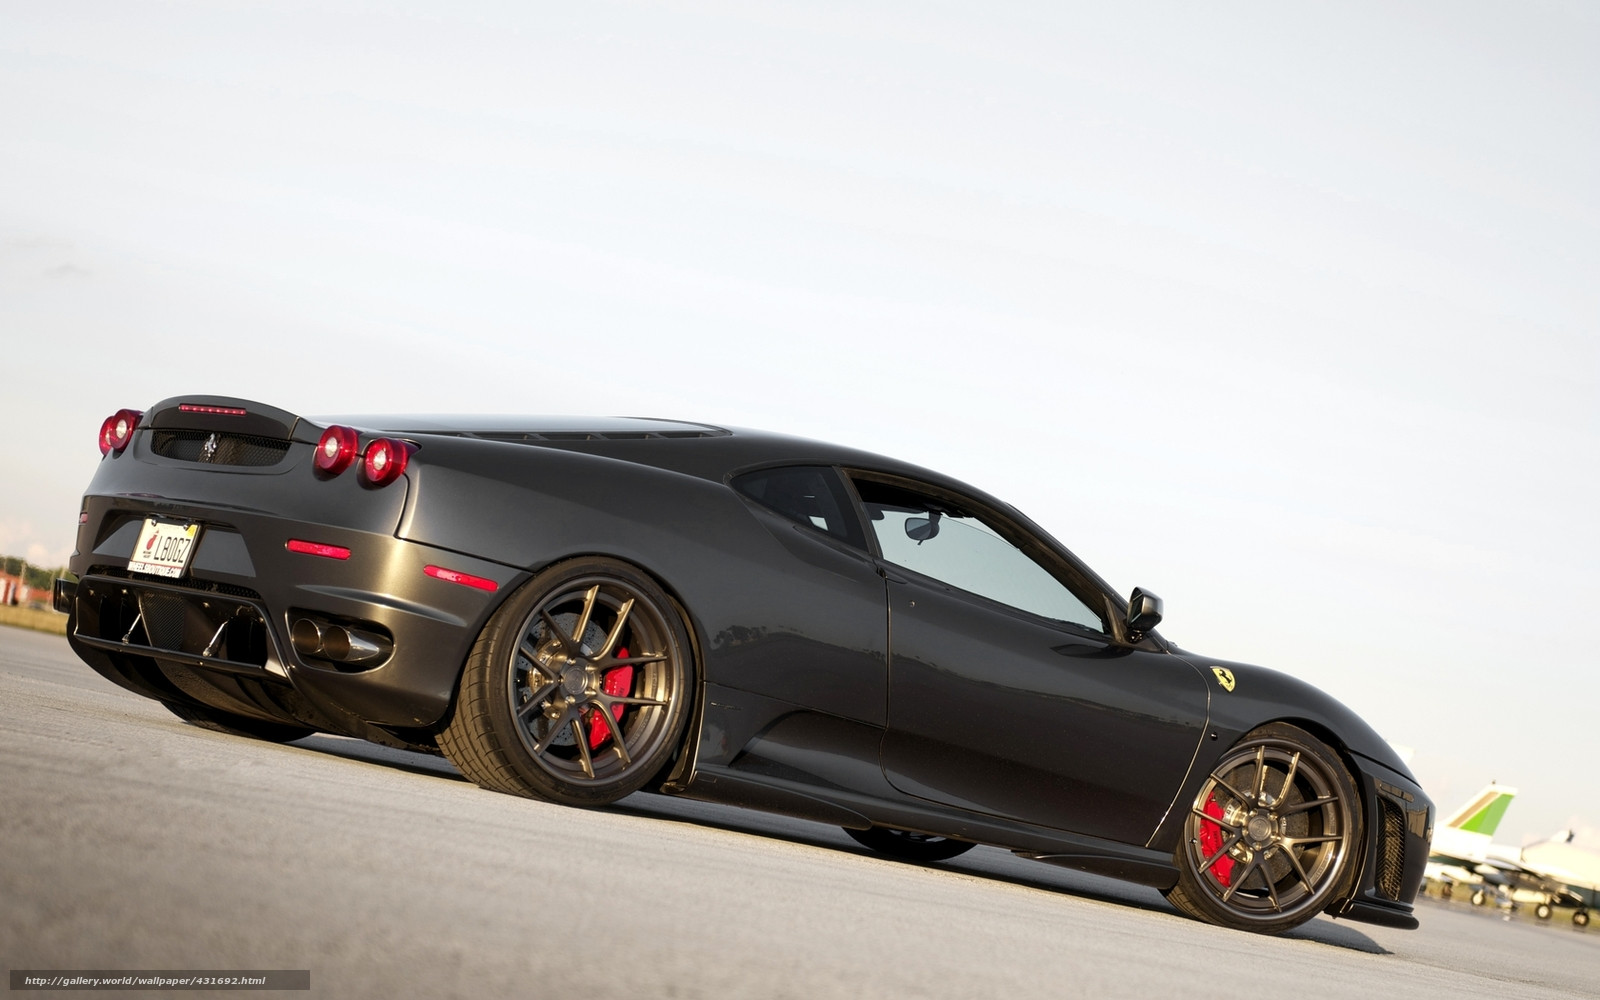 Download Wallpaper Ferrari Dark Gray Back View Cds Free